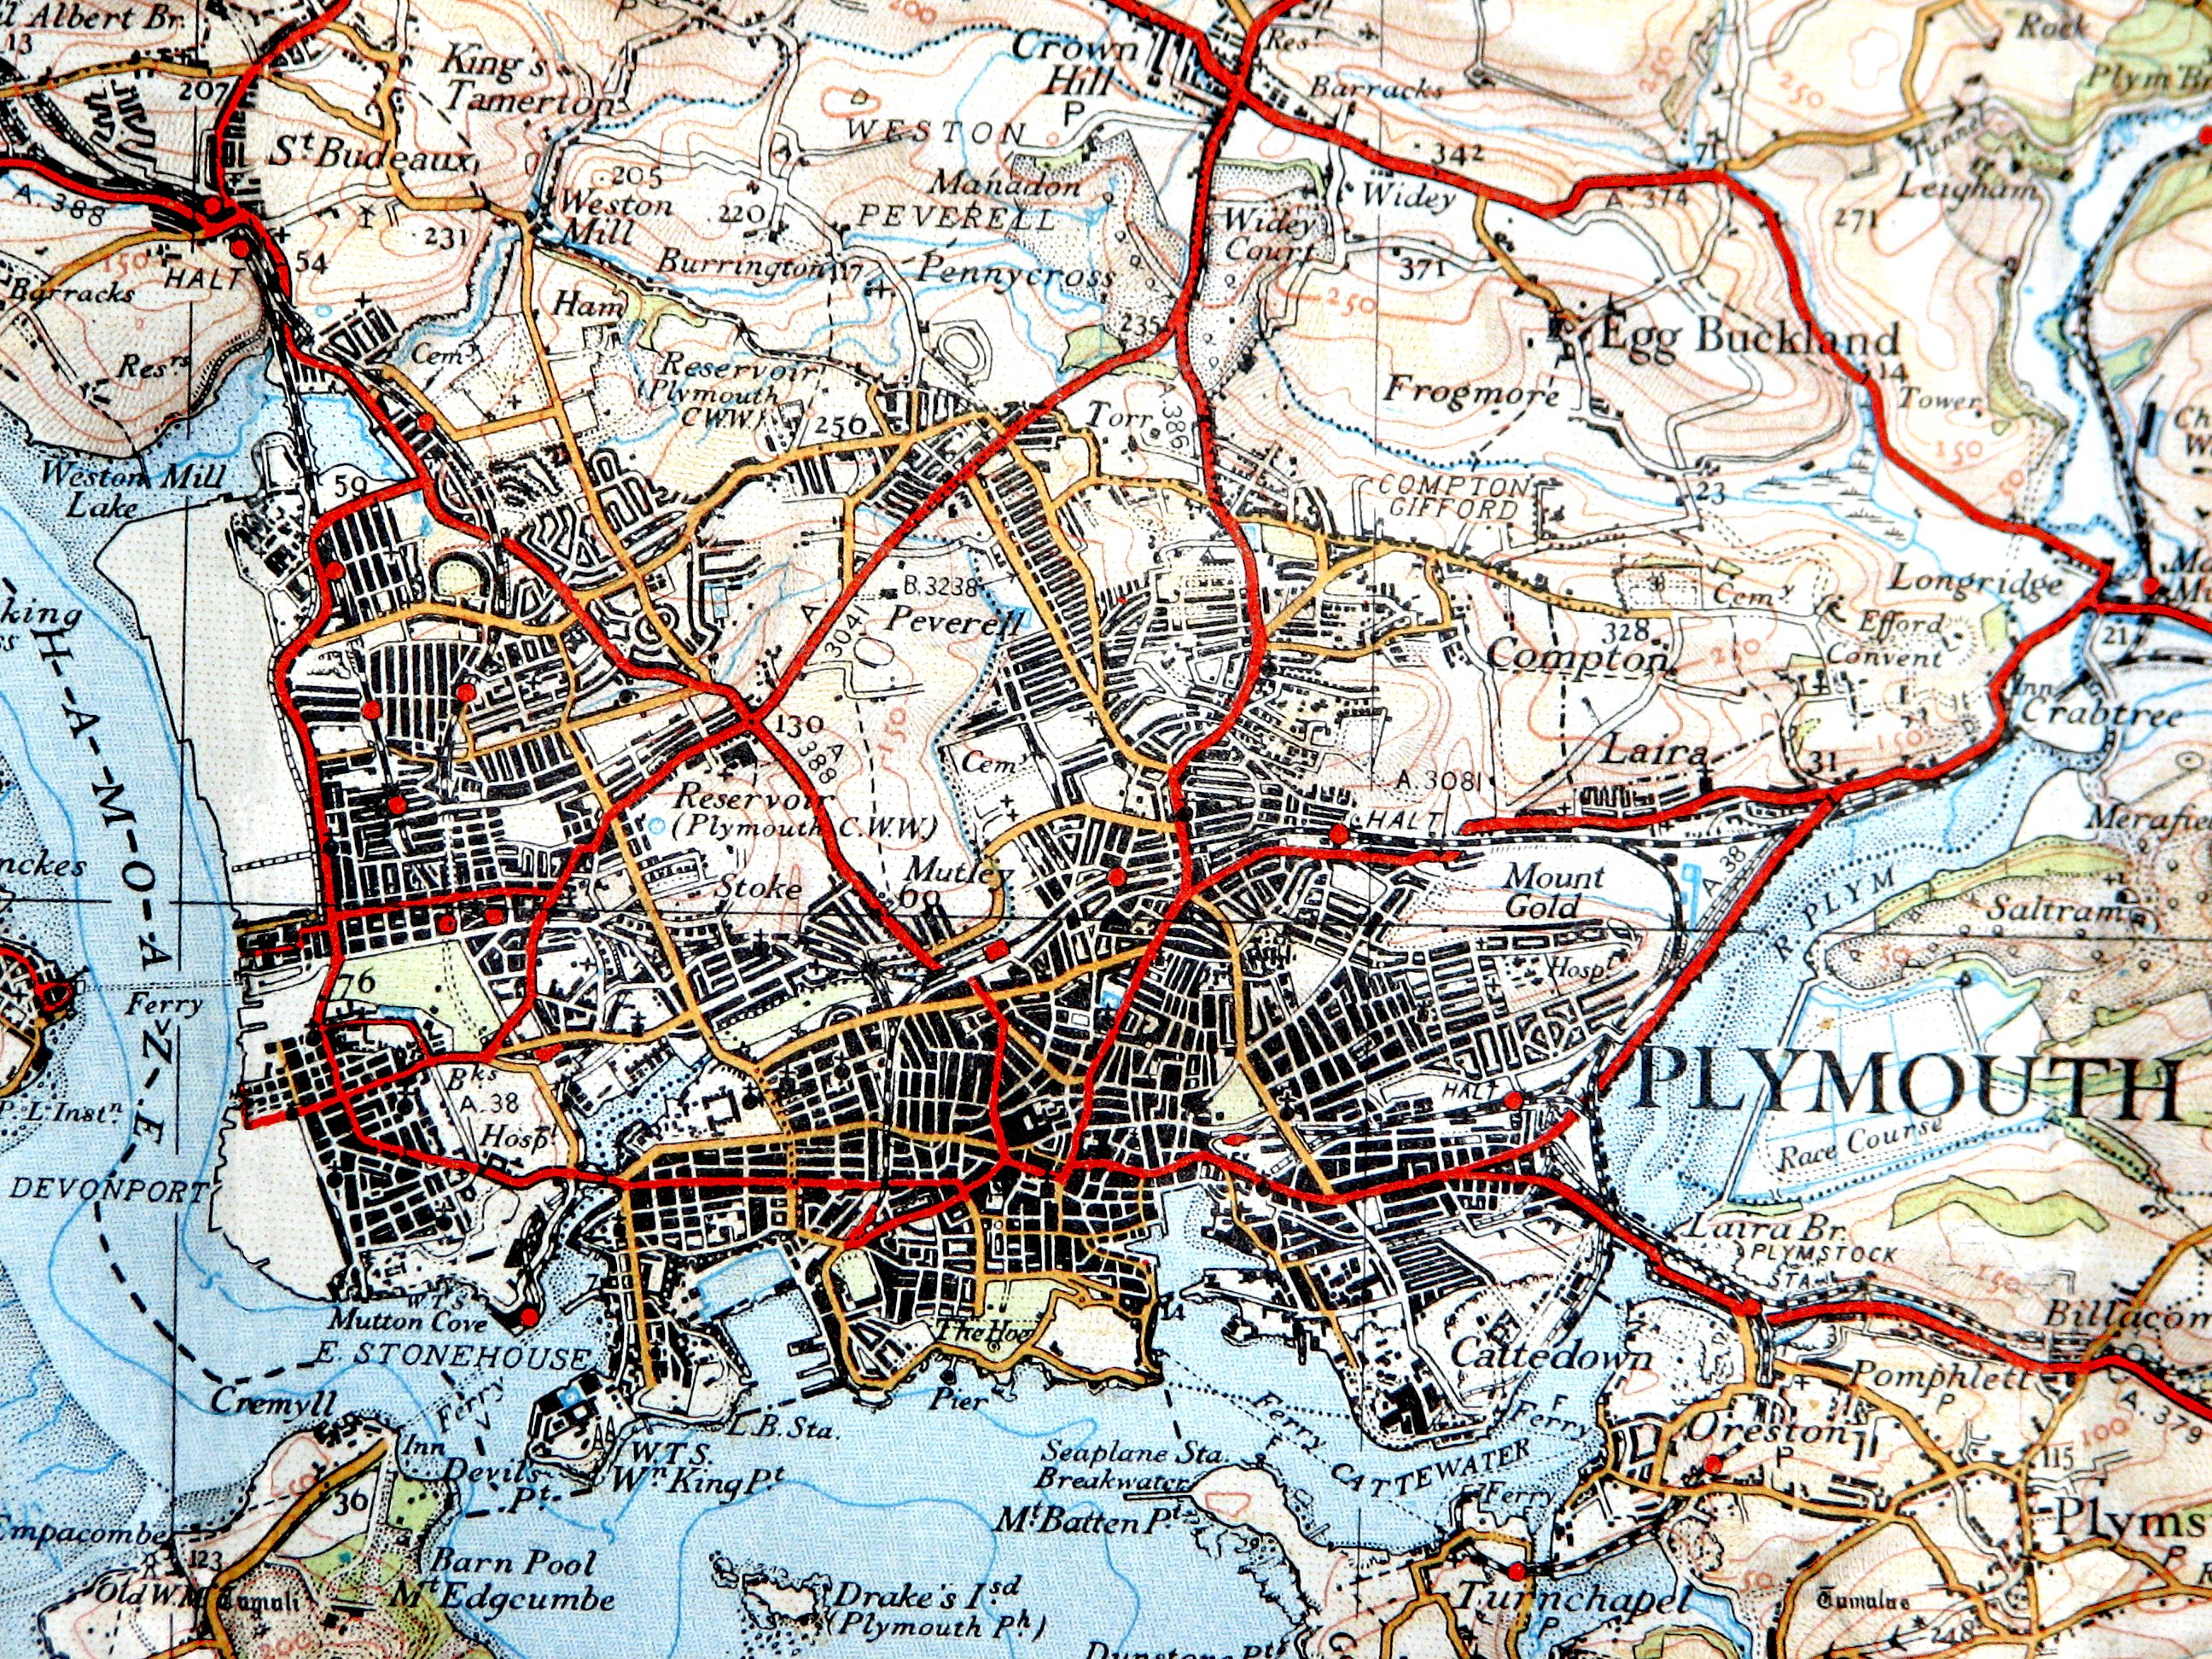 Map Of England Plymouth.File Plymouth Os 1 Inch 1936 Jpg Wikimedia Commons